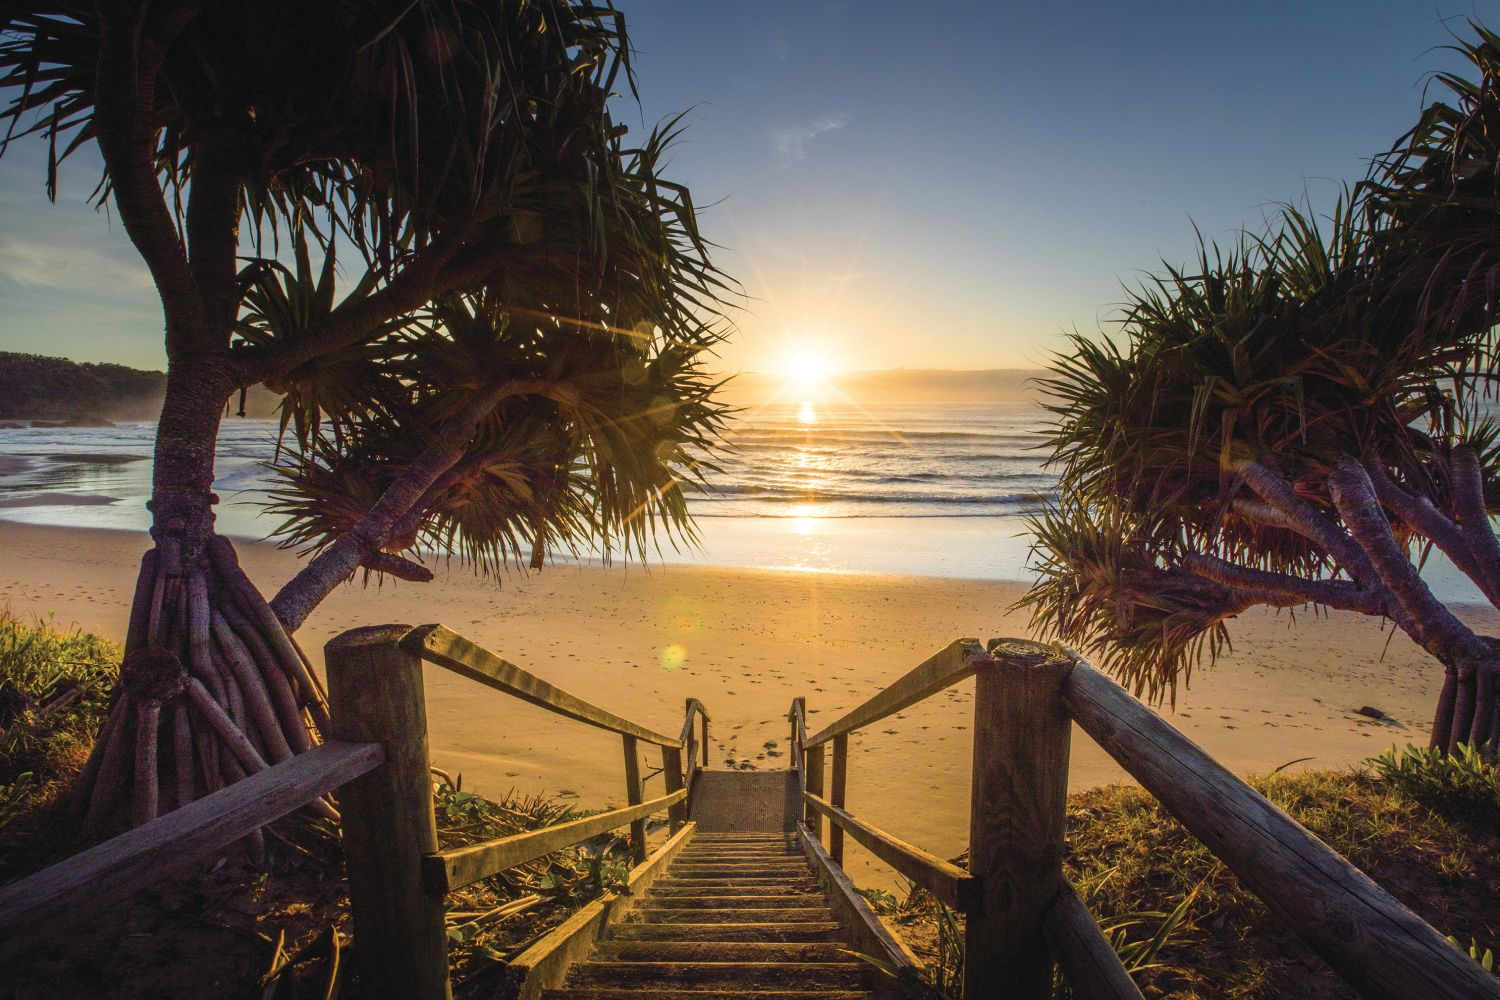 Sun rises over Diggers Beach in Coffs Harbour - North Coast